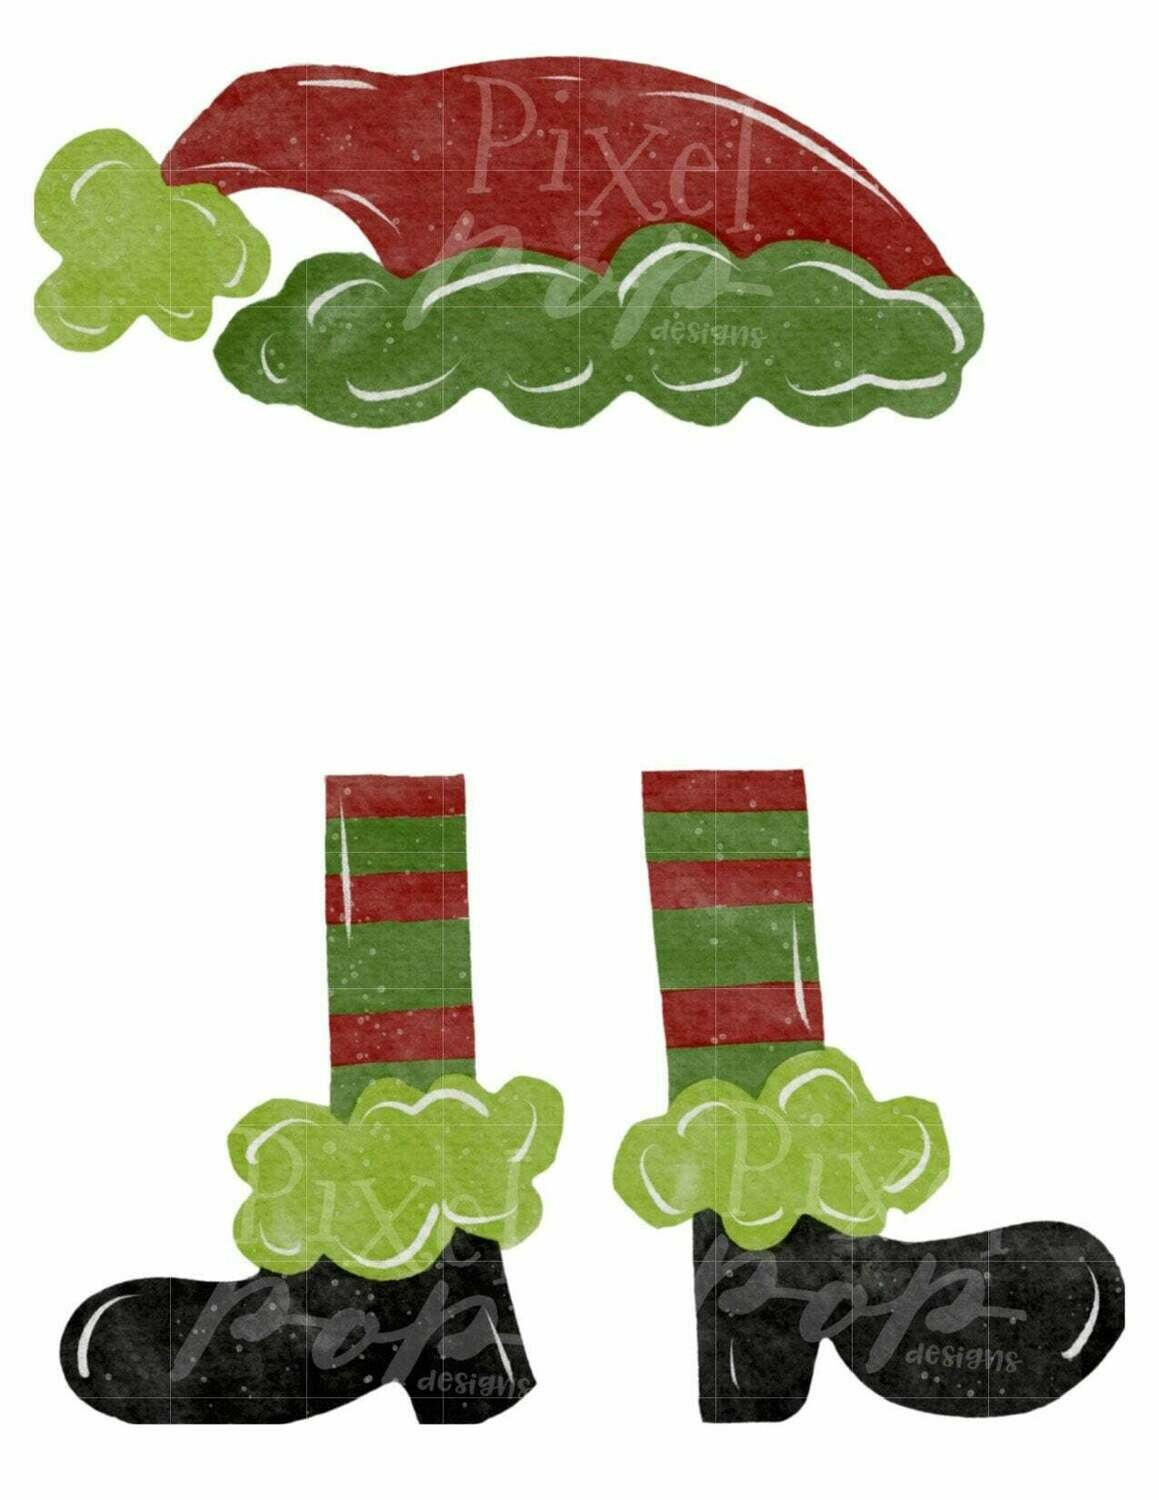 Santa Hat Legs Boots Digital Watercolor Sublimation PNG | Hand Drawn Design | Sublimation PNG | Digital Download | Printable Artwork | Art